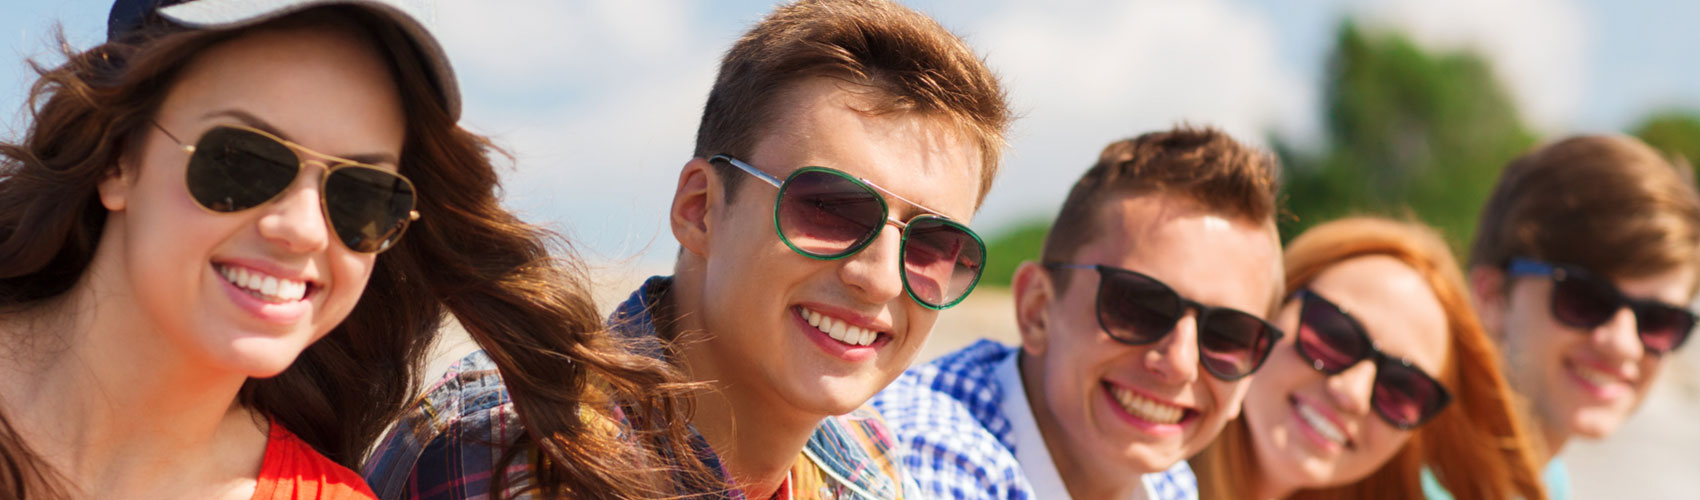 young adults wearing sunglasses